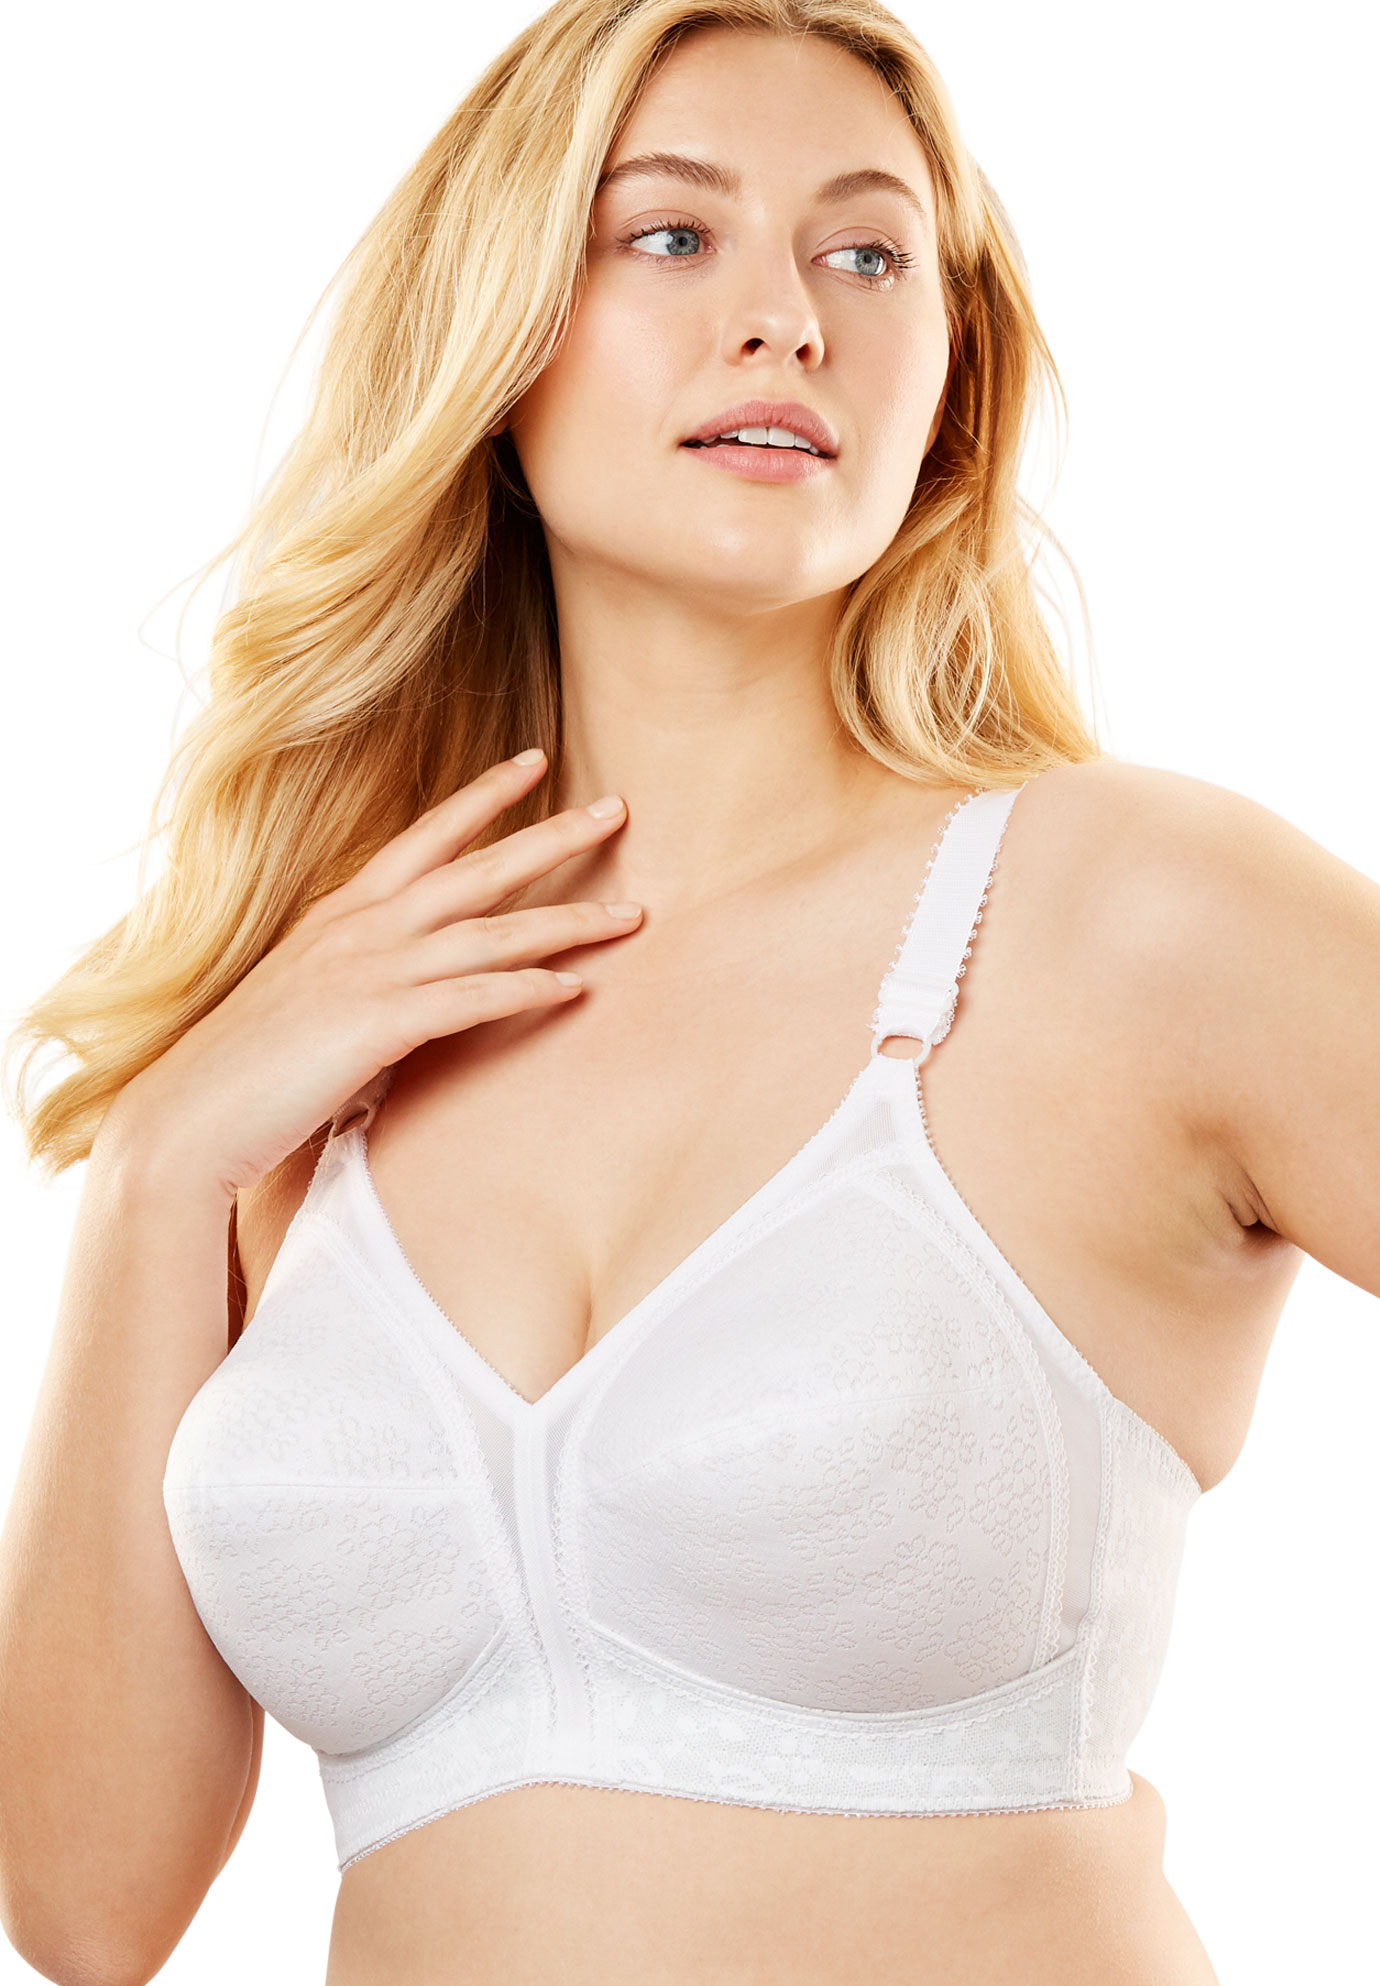 Swimsuitsforall.com coupon: Plus Size Women's 18 Hour Sensational Support Wireless Bra 20/27 by Playtex in White (Size 38 DD)